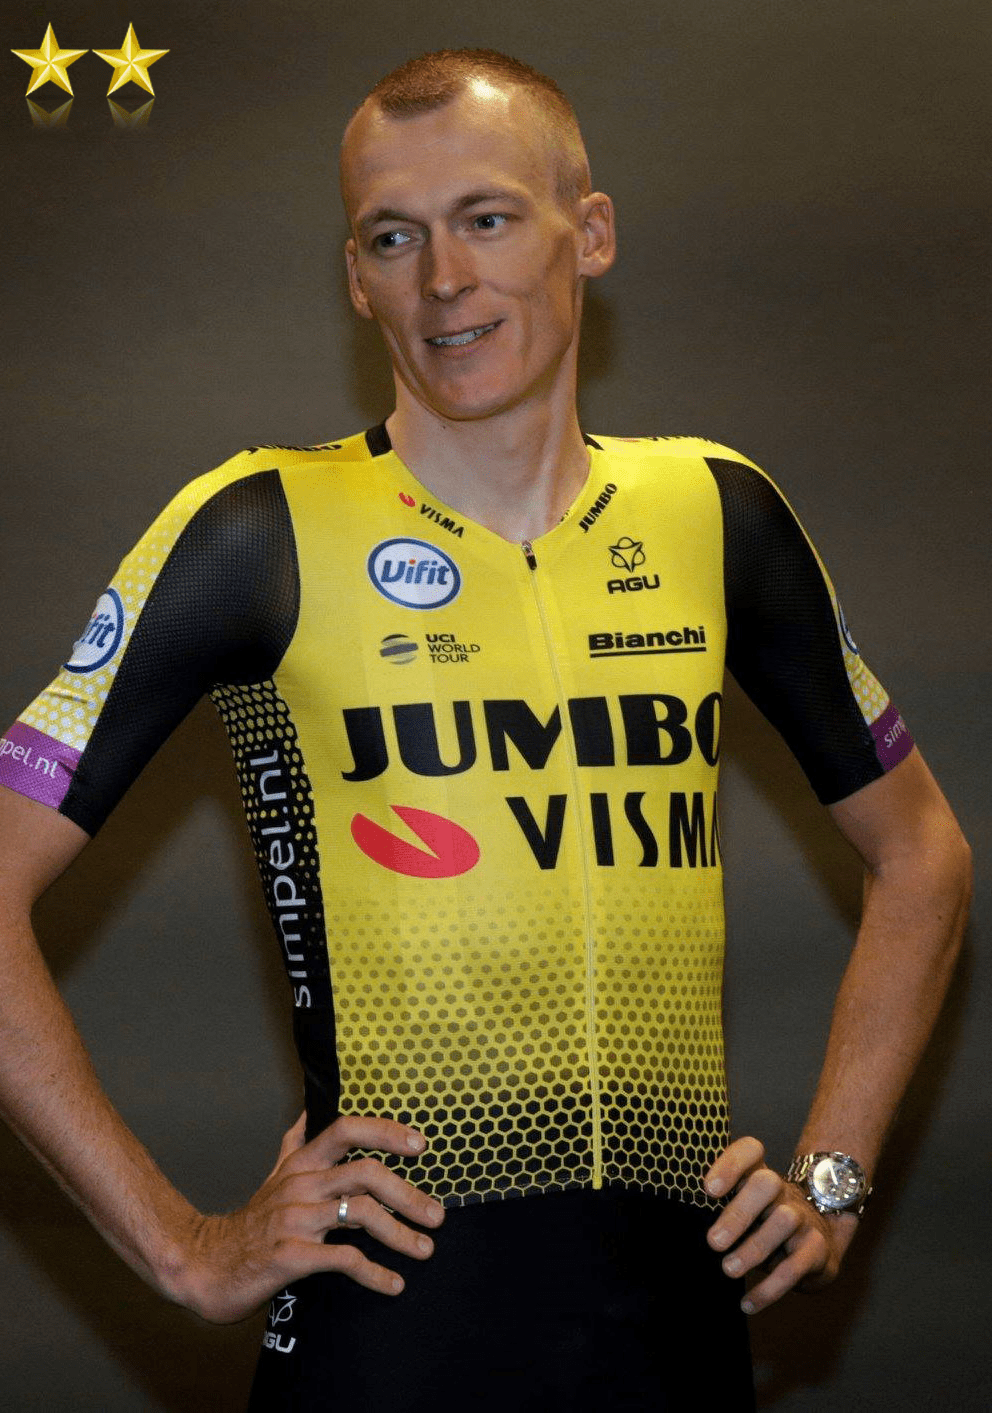 robert gesink in the 2019 team jumbo visma pro cycling team kit